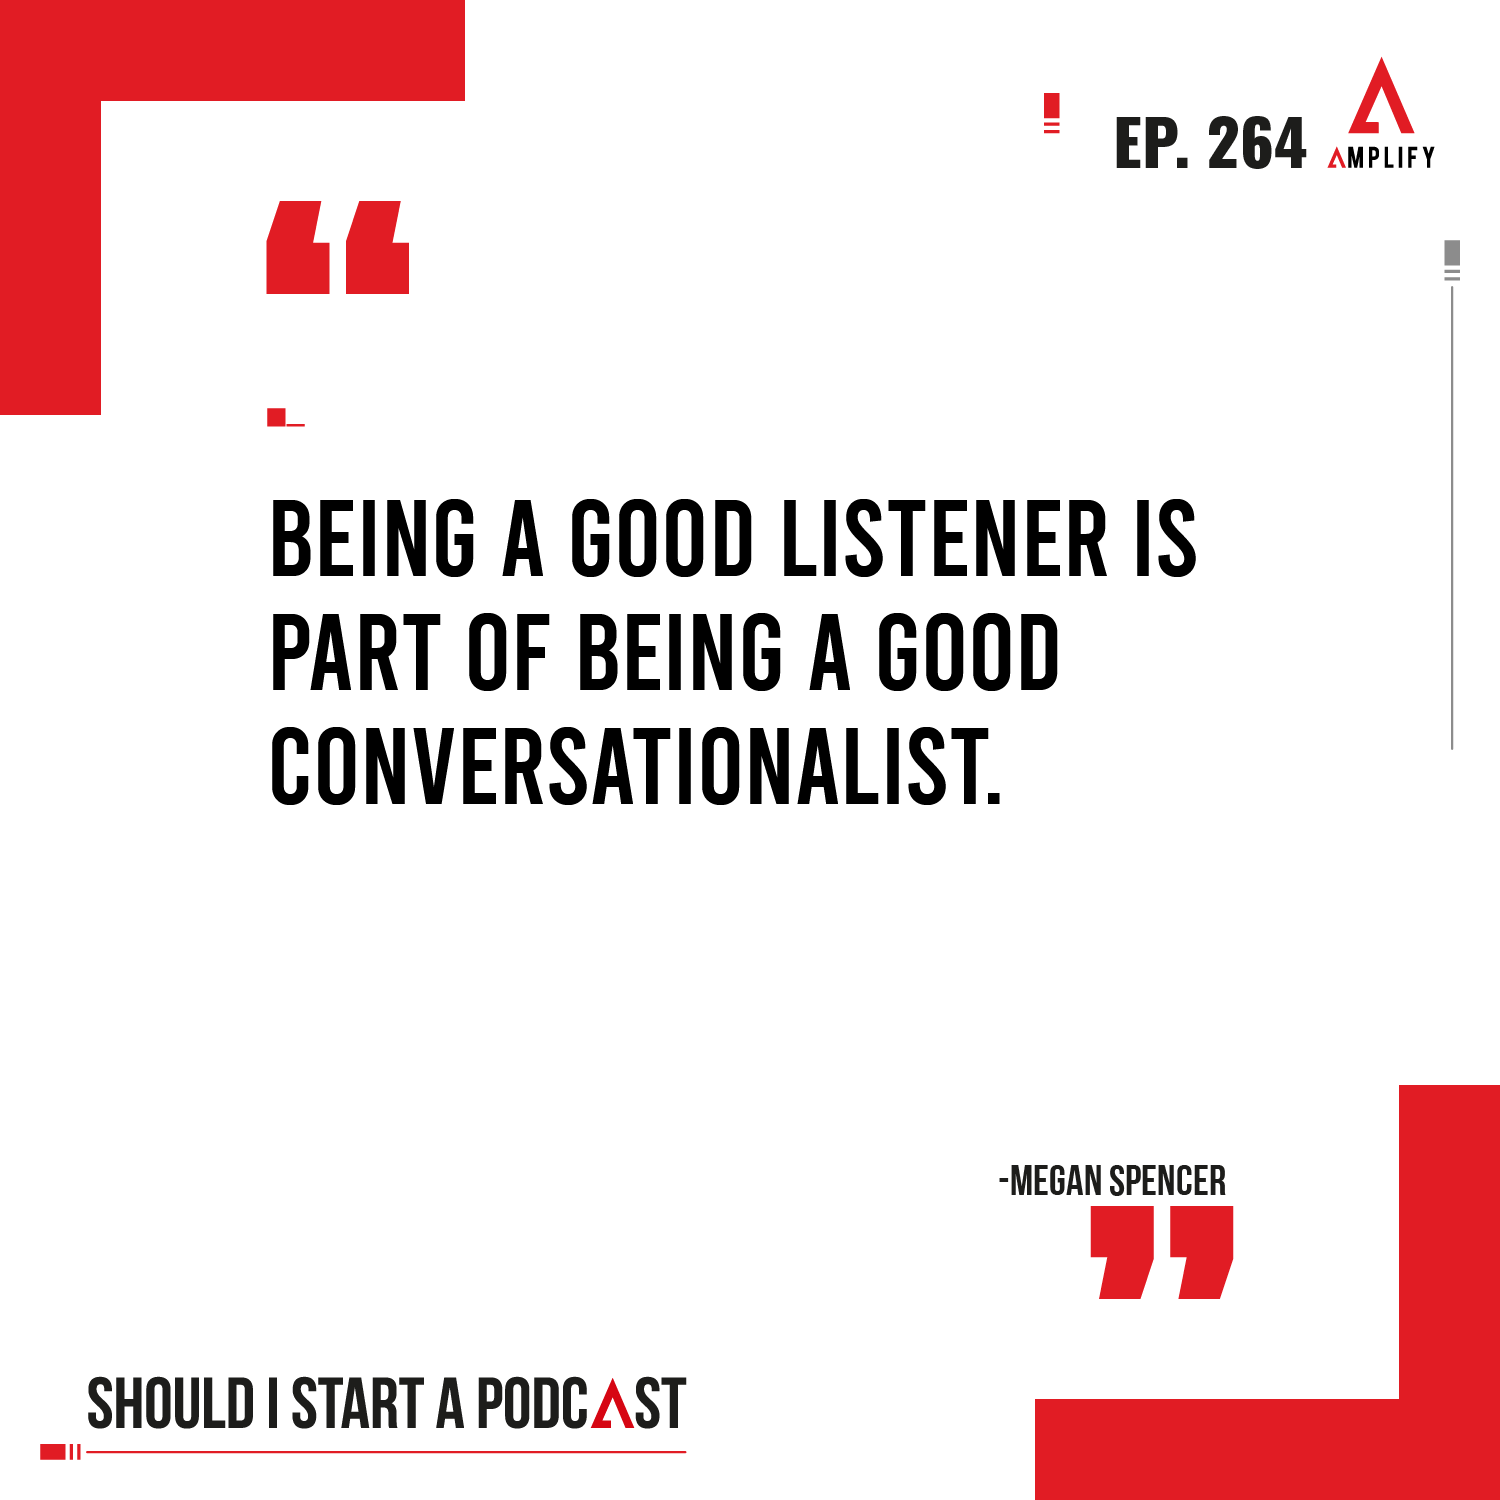 decorative image with the quote Being a good listener is part of being a good conversationalist.